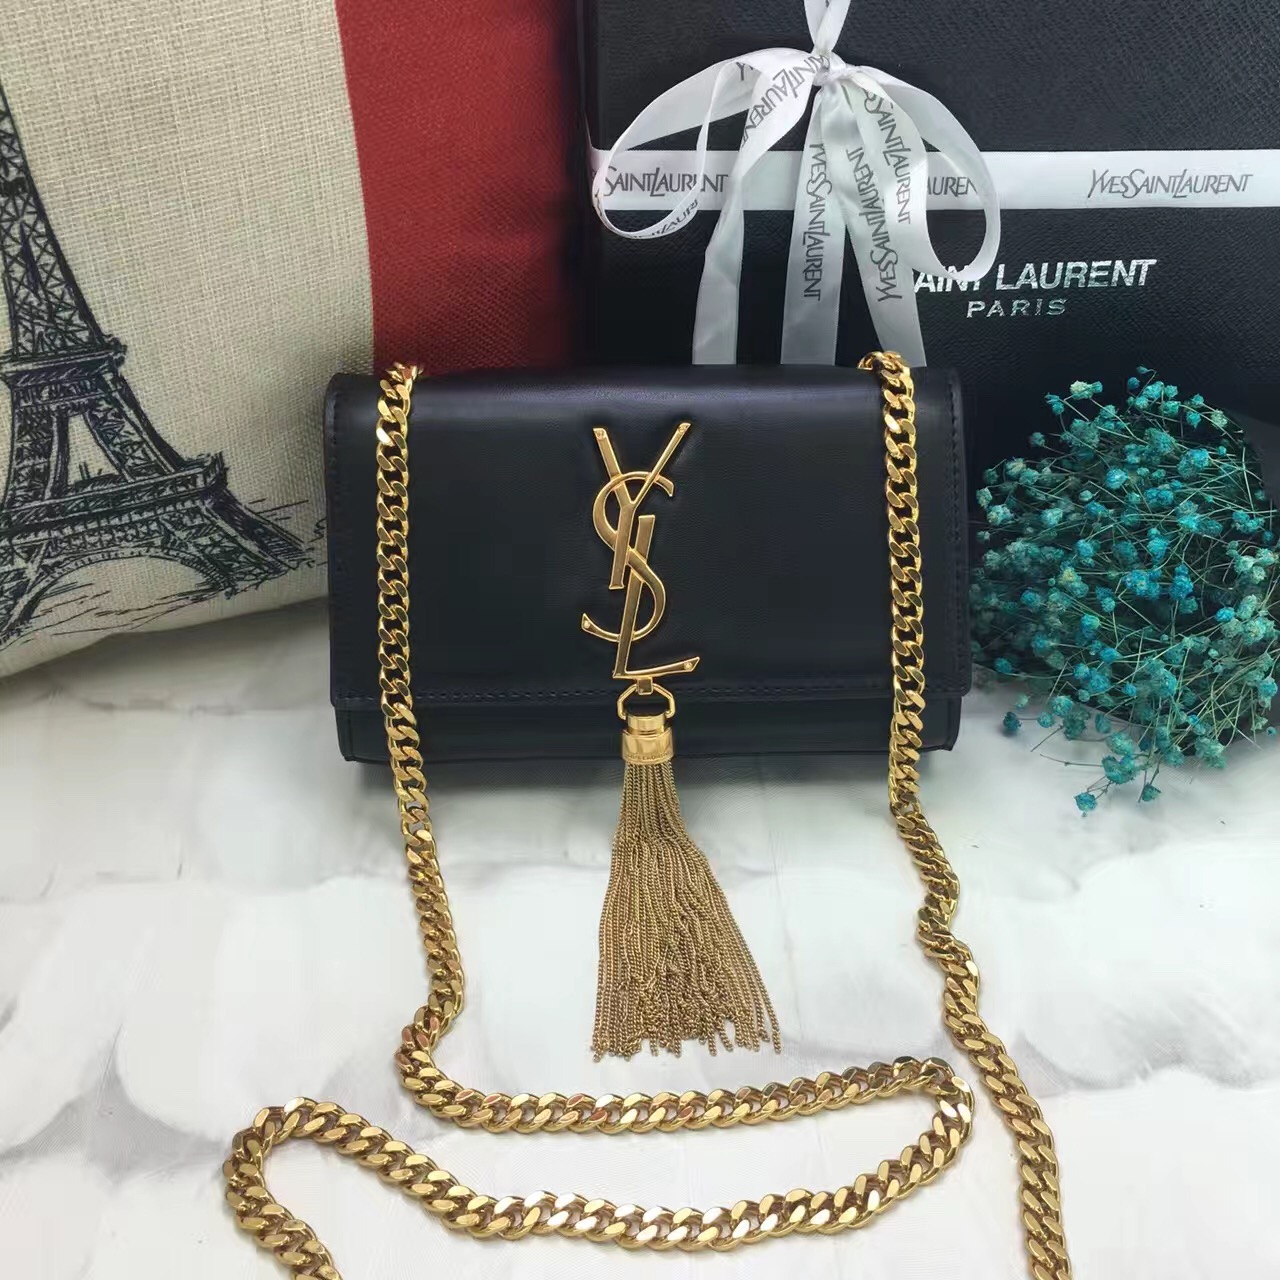 YSL Small Tassel Chain Leather Bag 17cm Black 851c001757a35